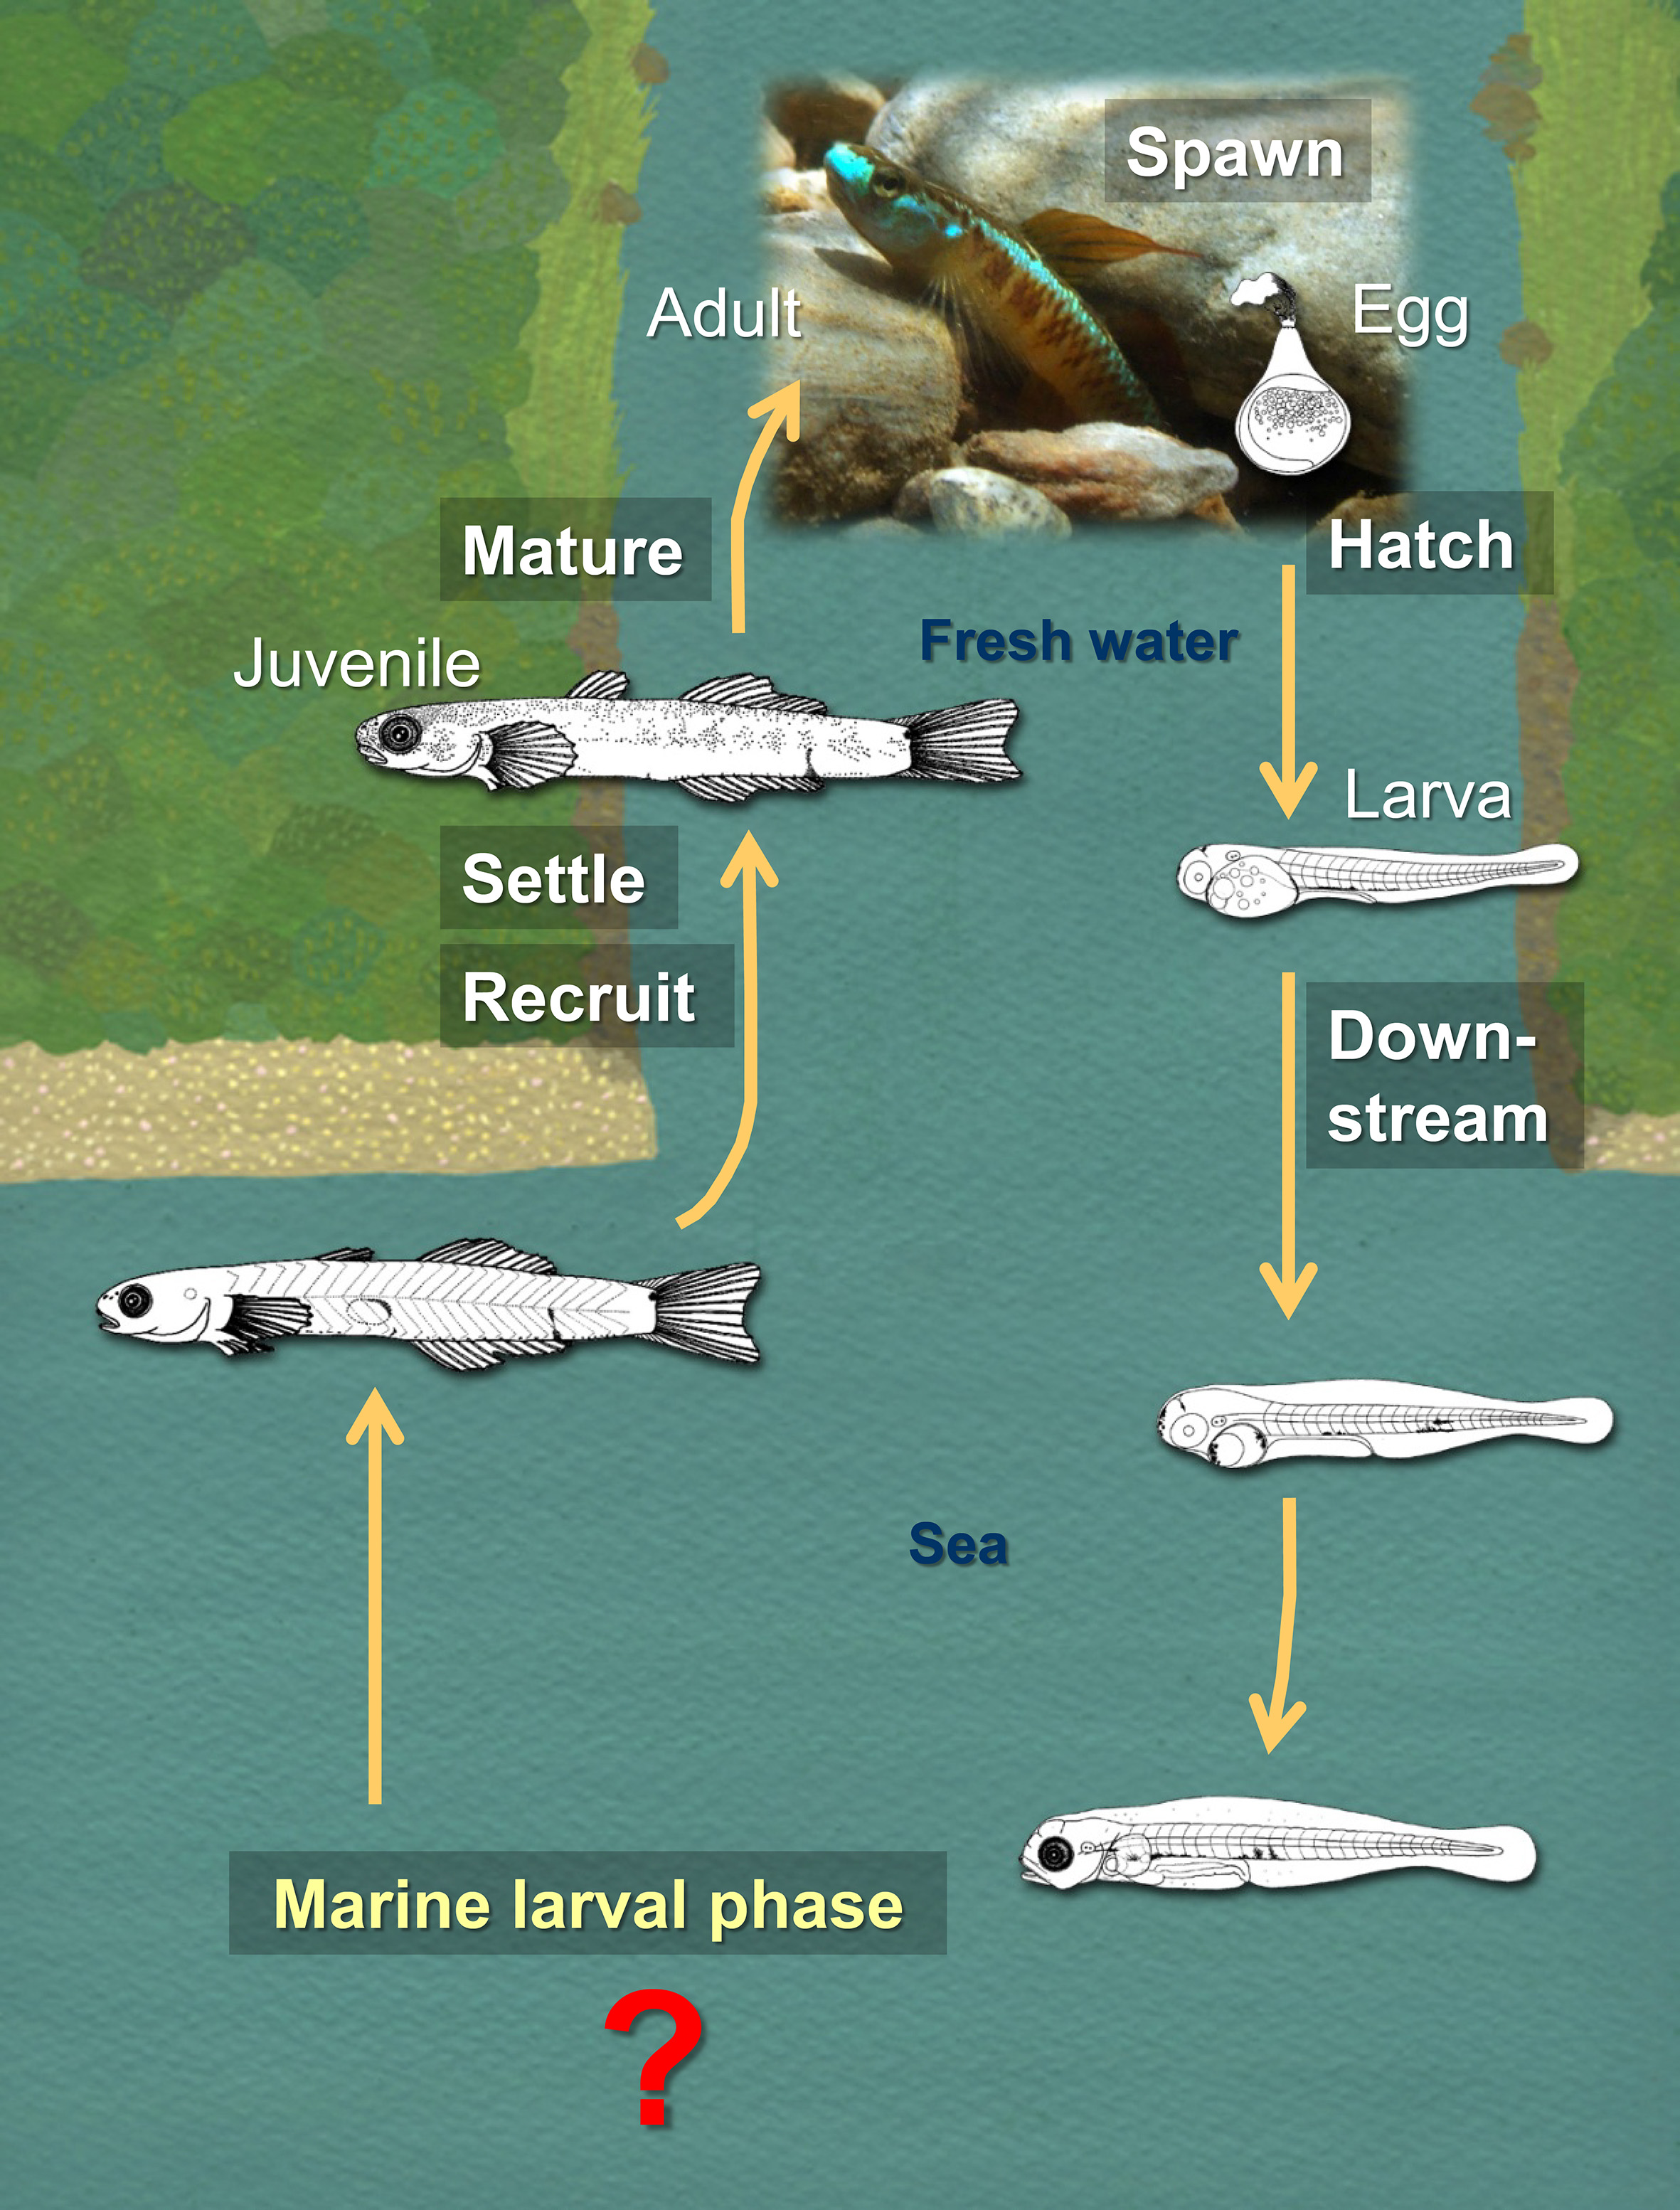 Many fish species found in Okinawa migrate between streams and the sea.  The larvae usually grow in marine habitats and then disperse during their larval phase.  Their larval ecology in marine habitats is unknown, though it is important for understanding their dispersal.